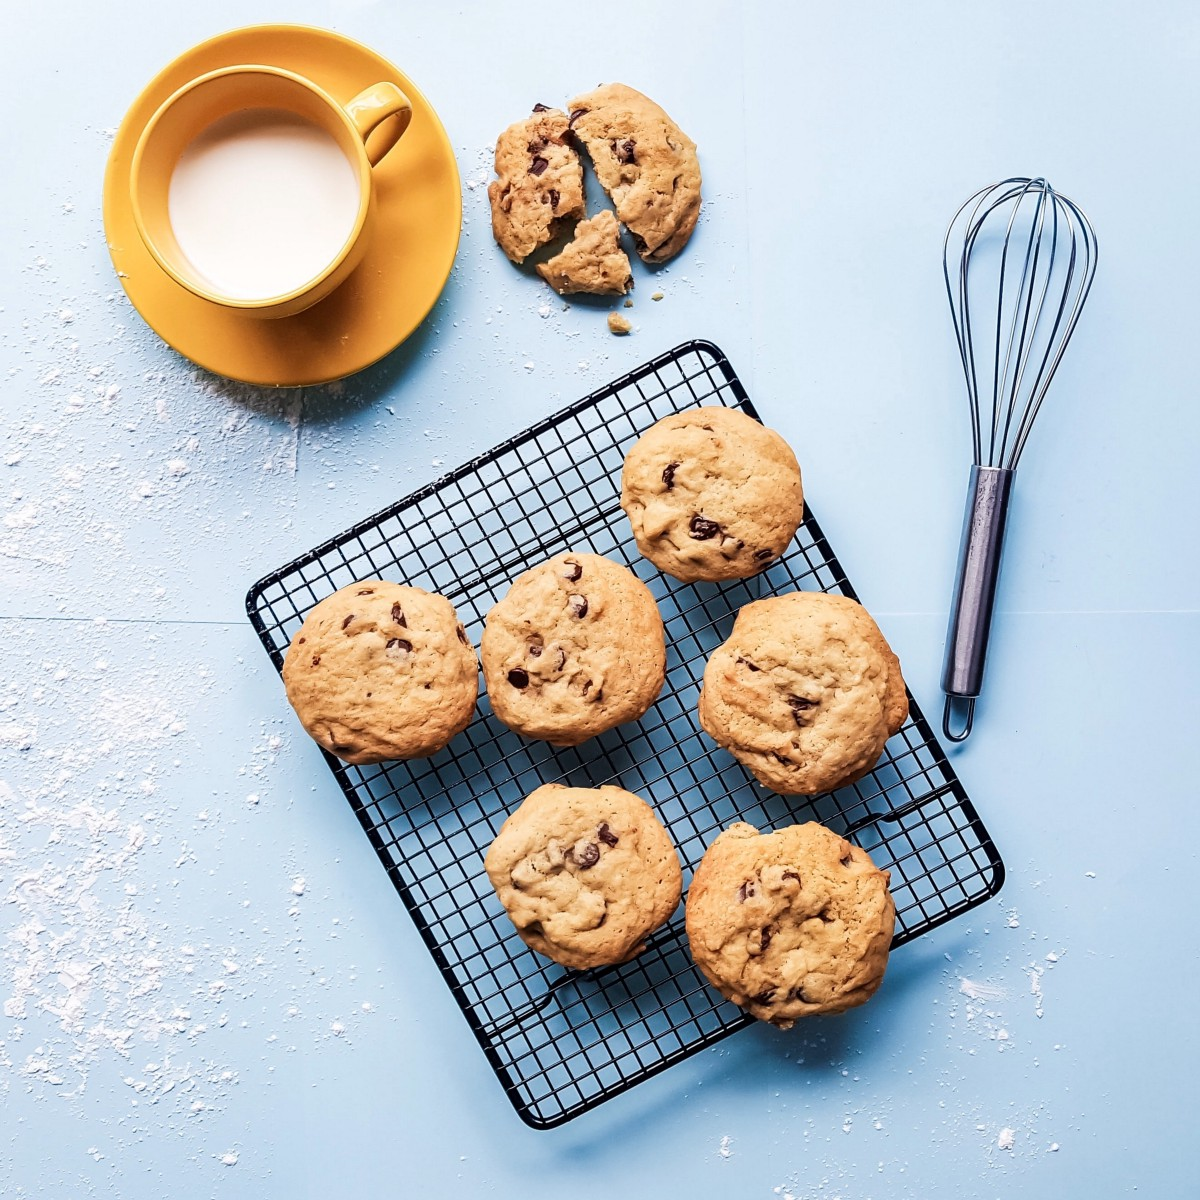 How We Turned Our Cookie Recipe Testing Into Exciting Content